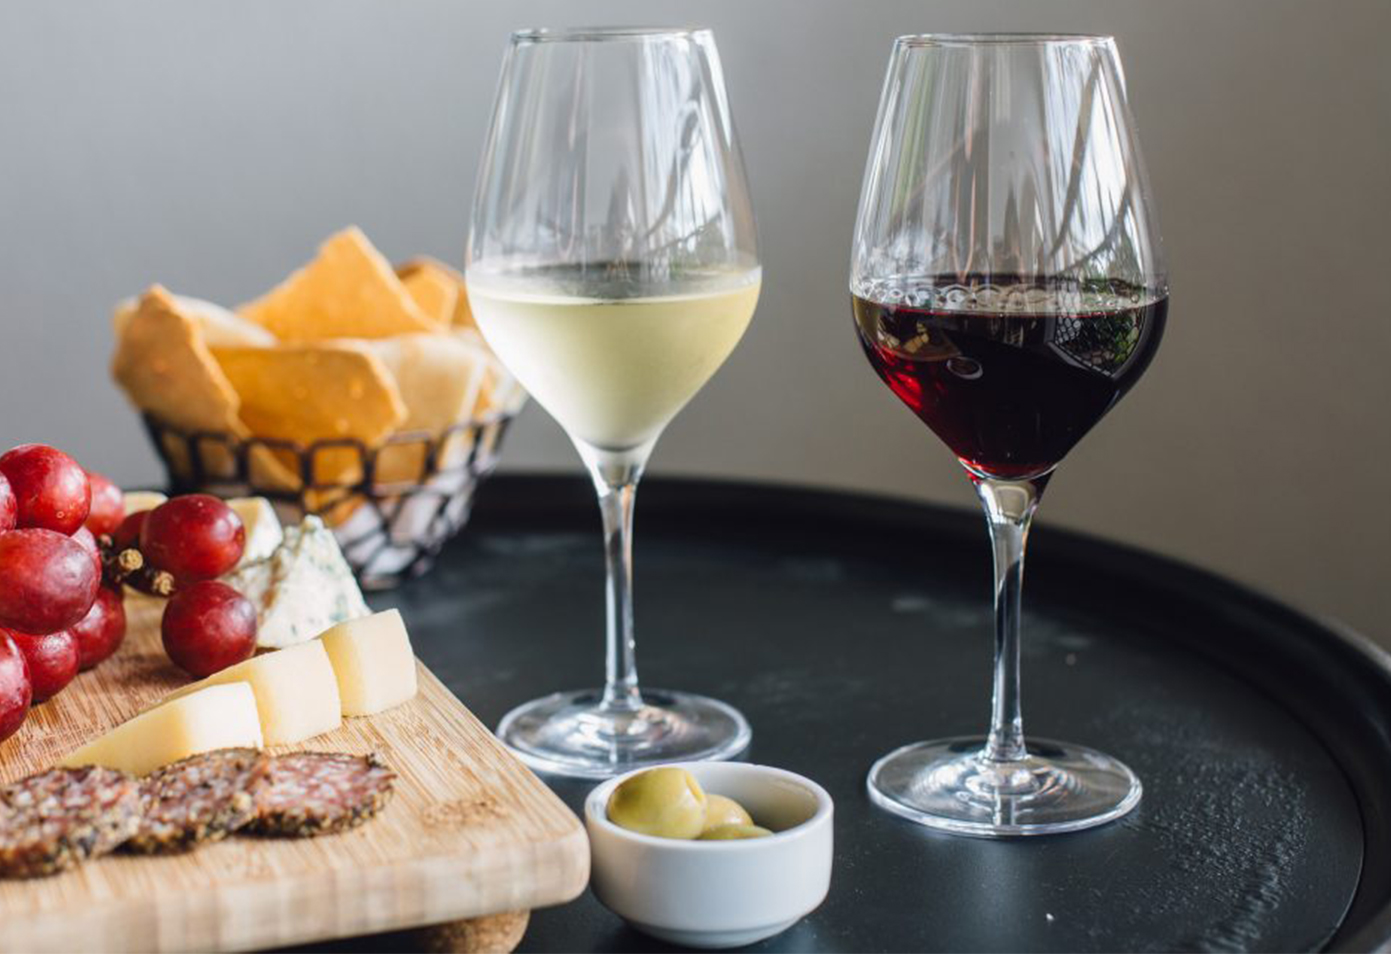 Wine and cheese amenity